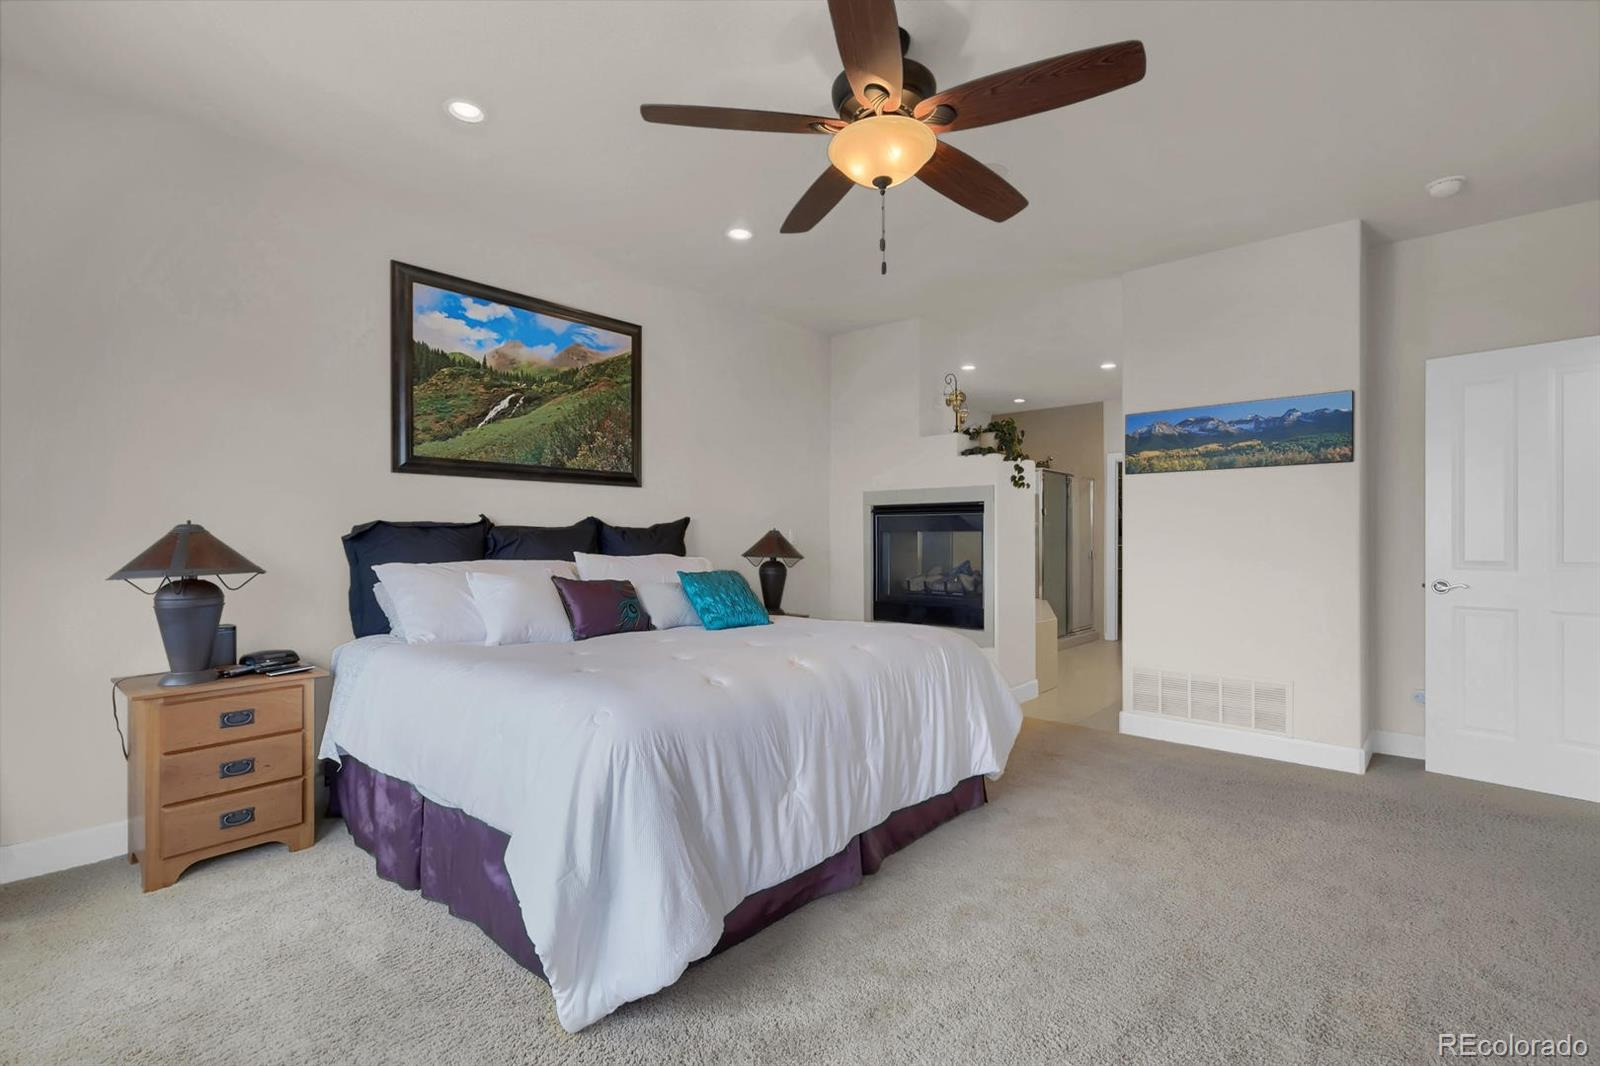 MLS# 5159811 - 17 - 207 Green Rock Place, Monument, CO 80132